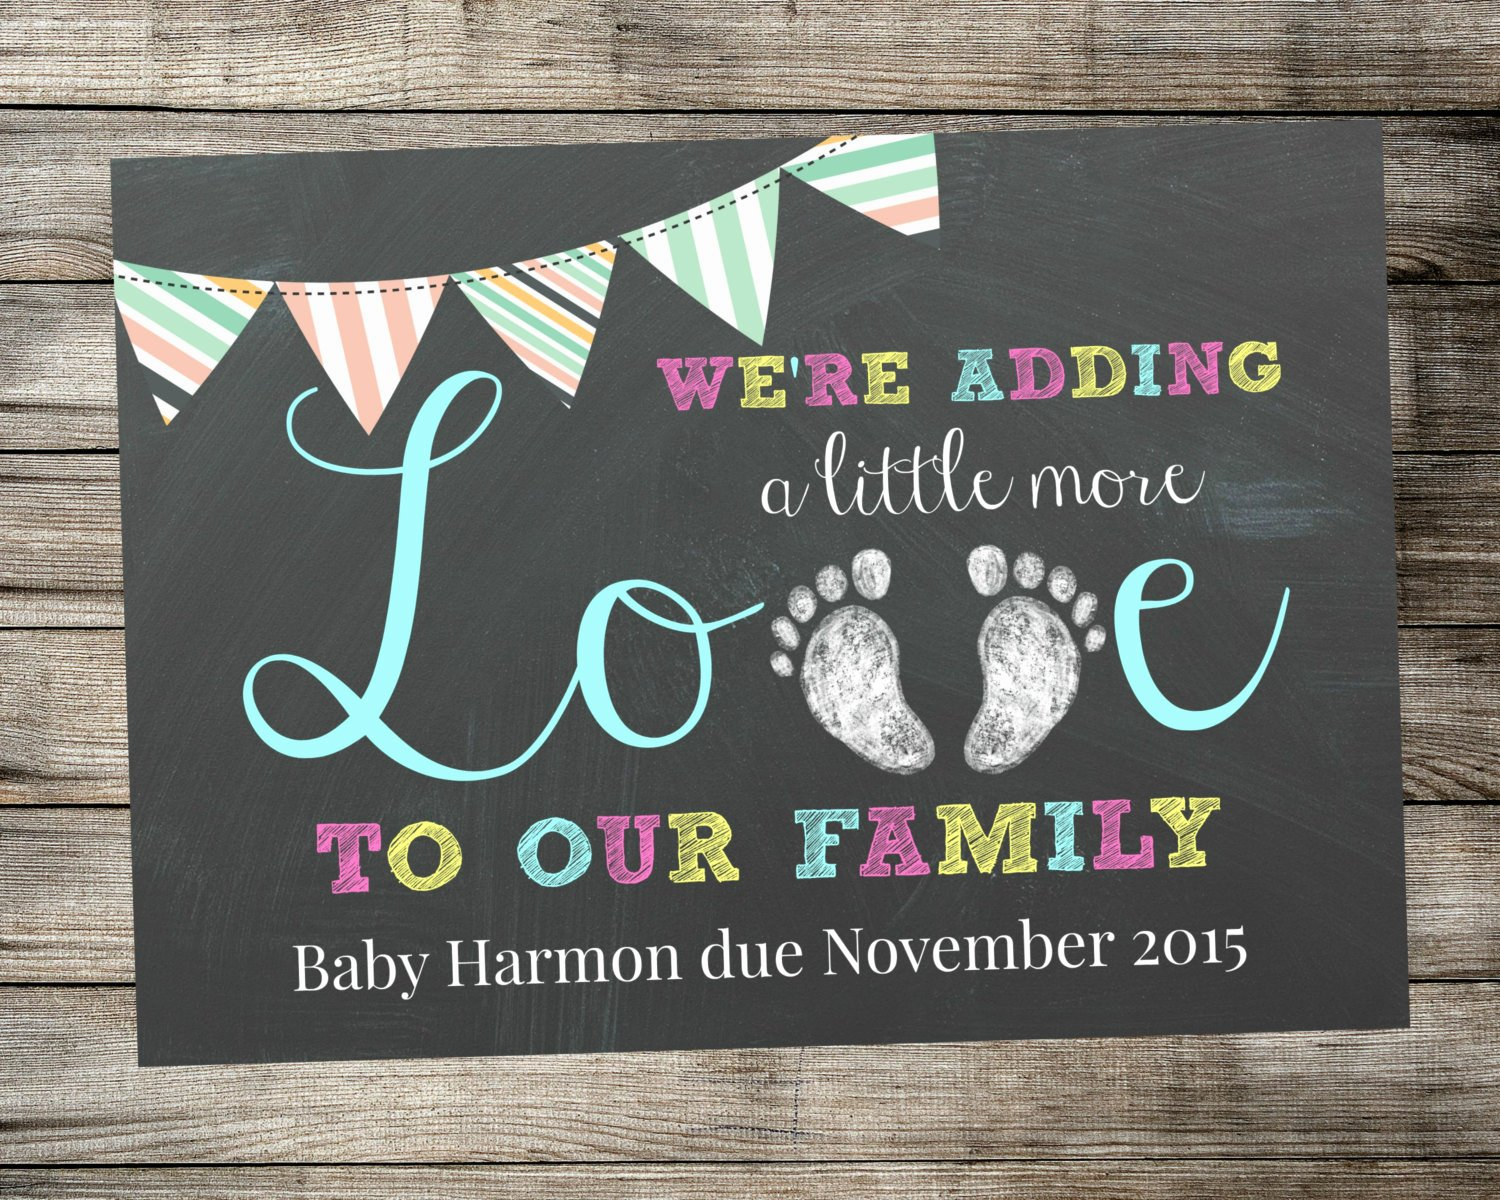 Free Printable Pregnancy Announcements Luxury Printable Pregnancy Announcement Adding Little More Love to